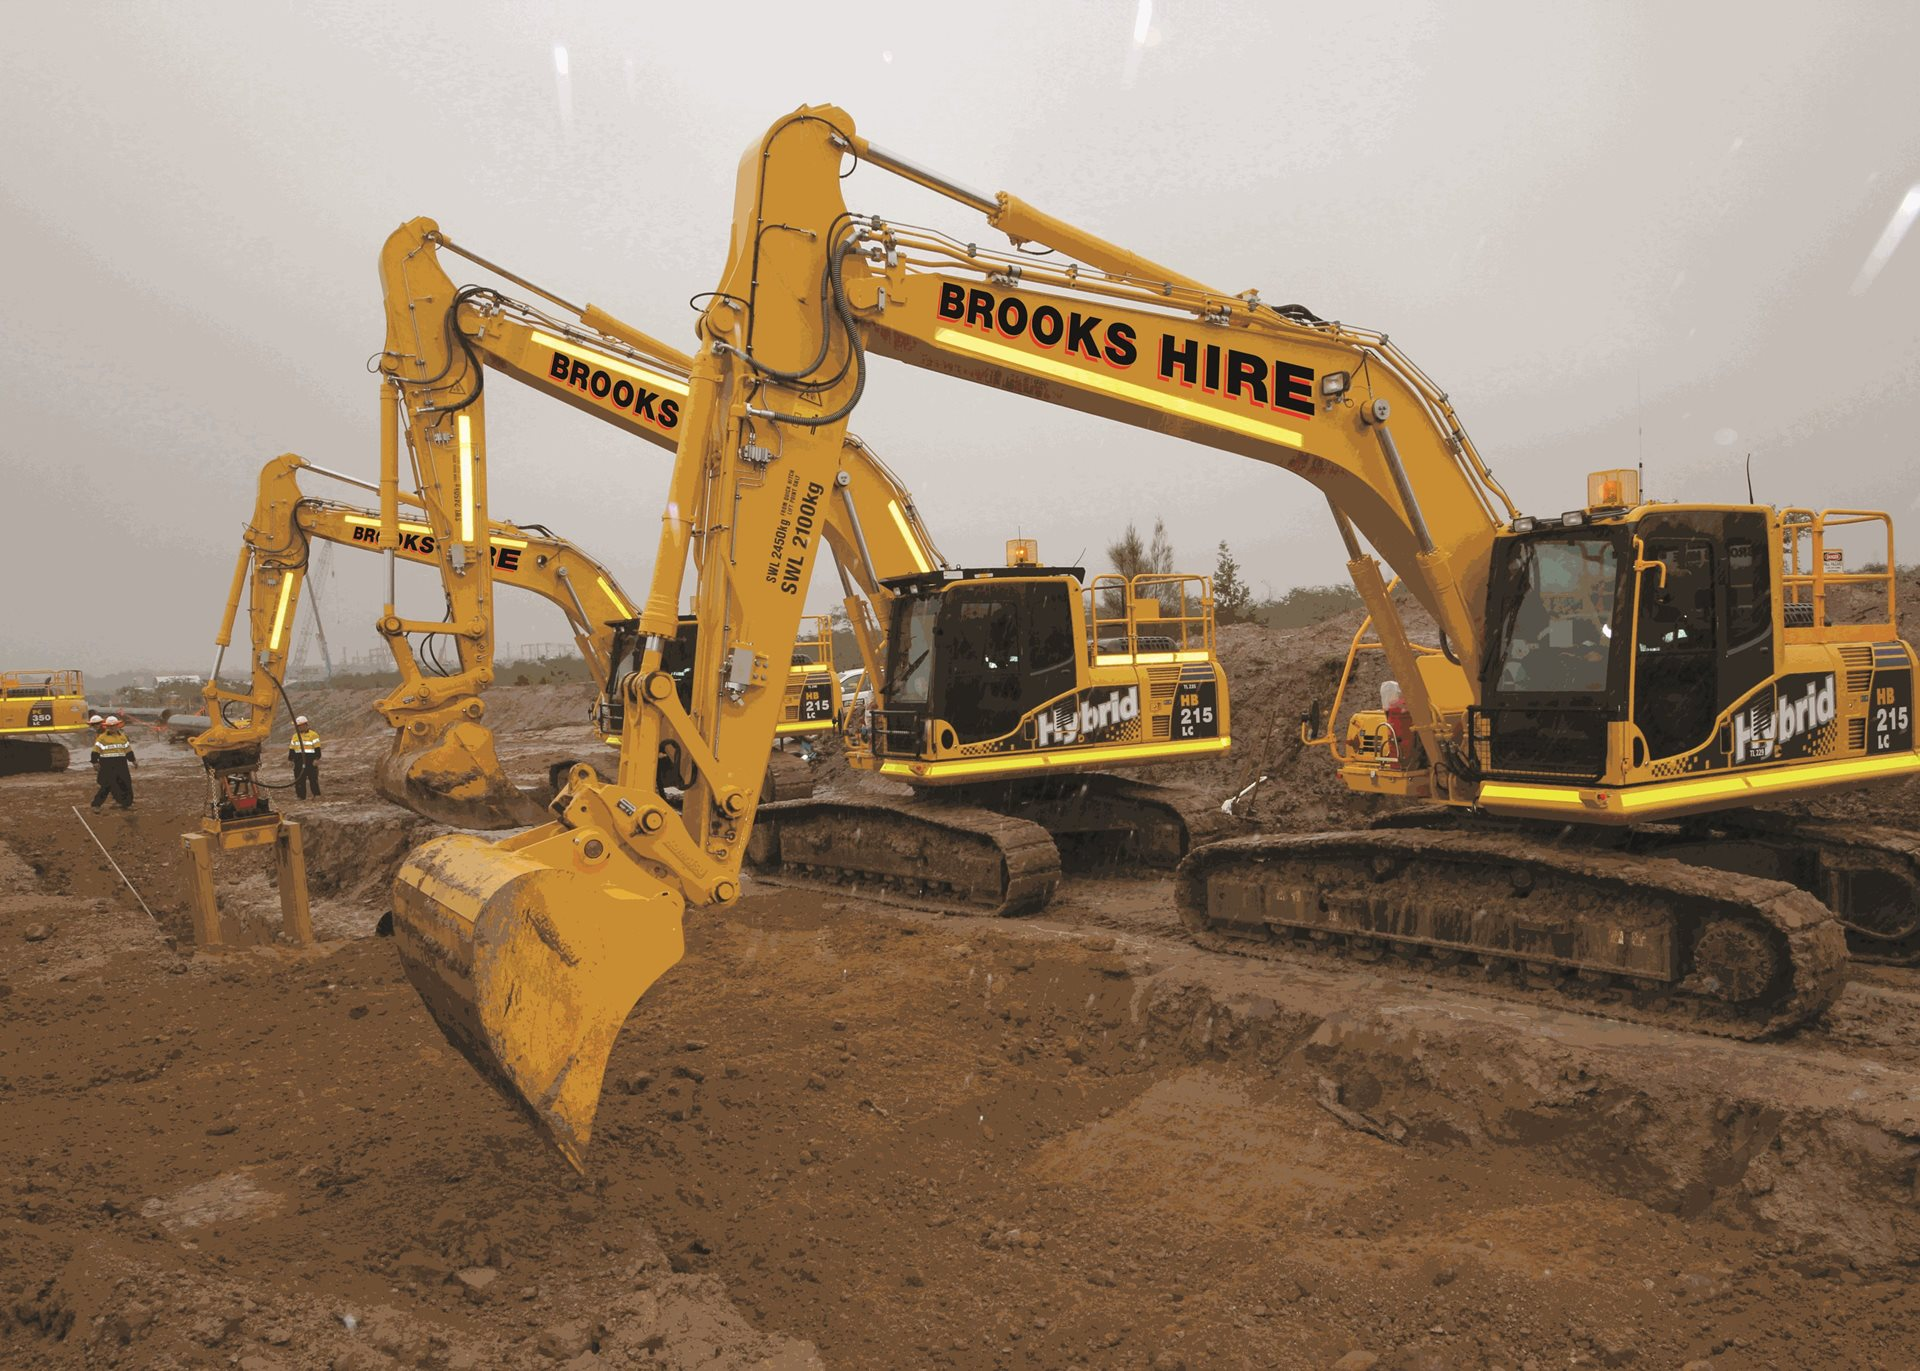 Earthmoving Machinery Equipment For Hire | Excavator Hire